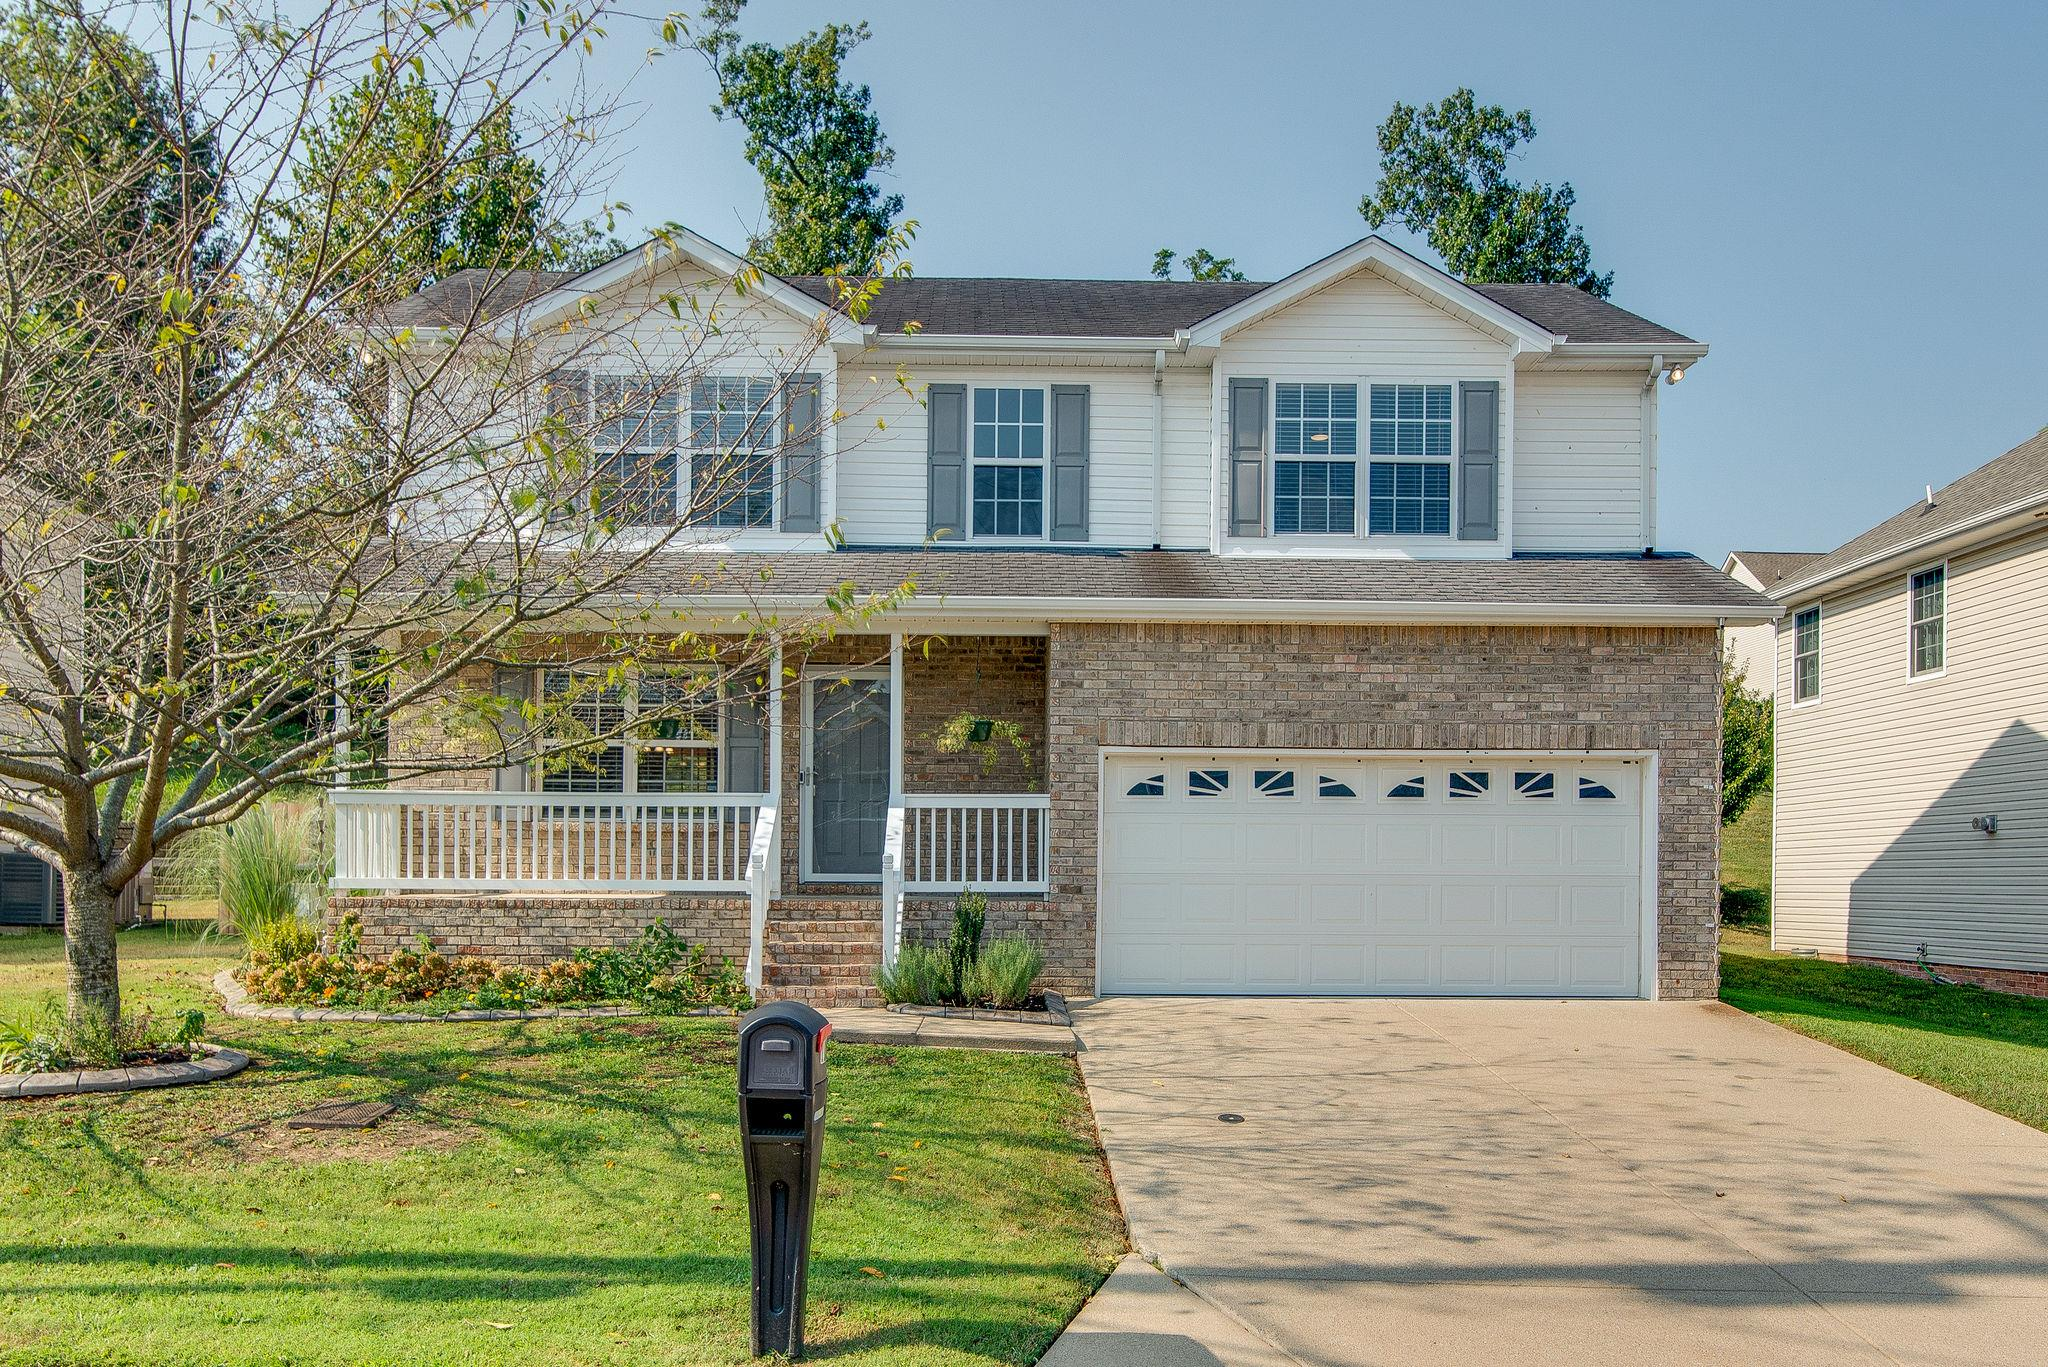 One of Nashville-Antioch 3 Bedroom Homes for Sale at 1157 Blairfield Dr